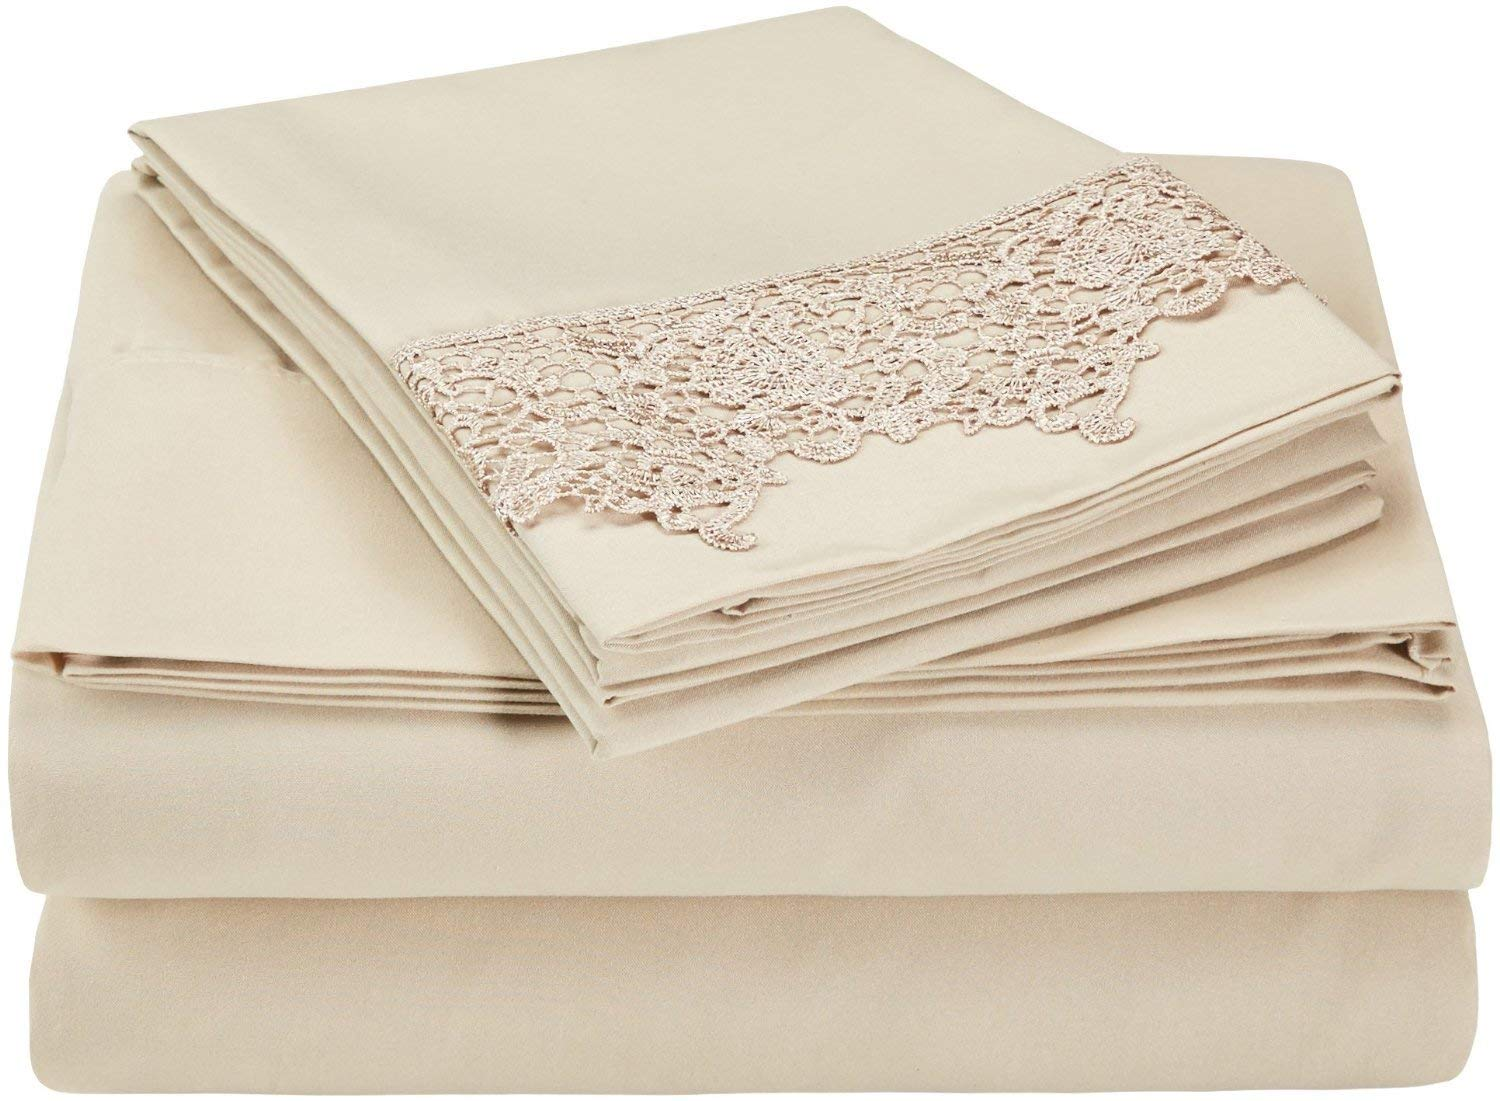 Image of Superior MIcrofiber Sheet Set - What Are Microfiber Sheets